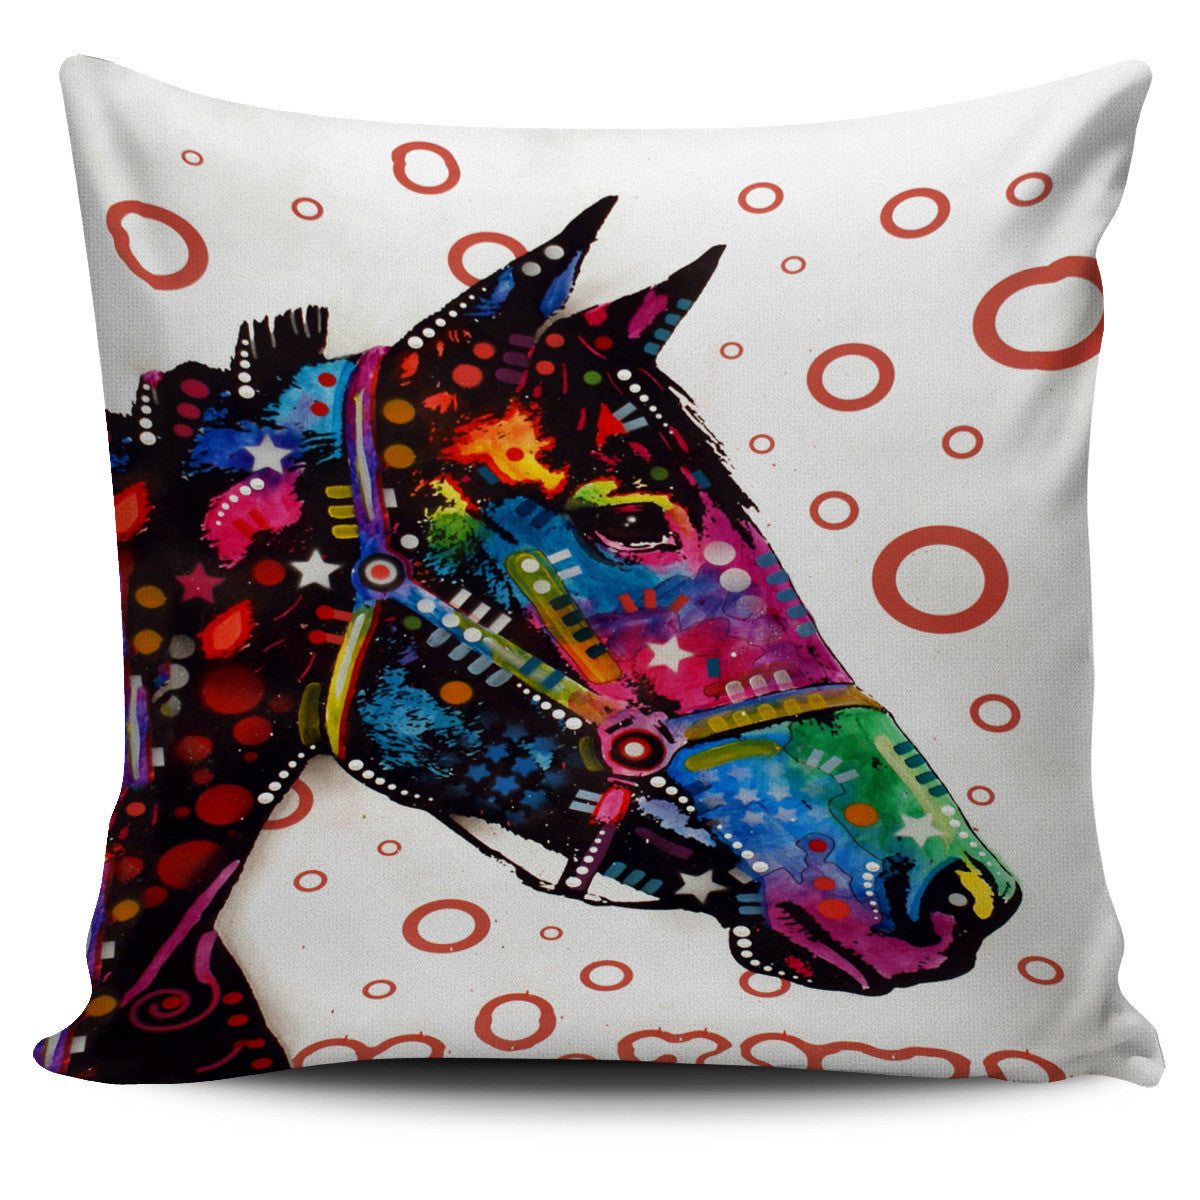 Horse Series Pillow Covers Offer